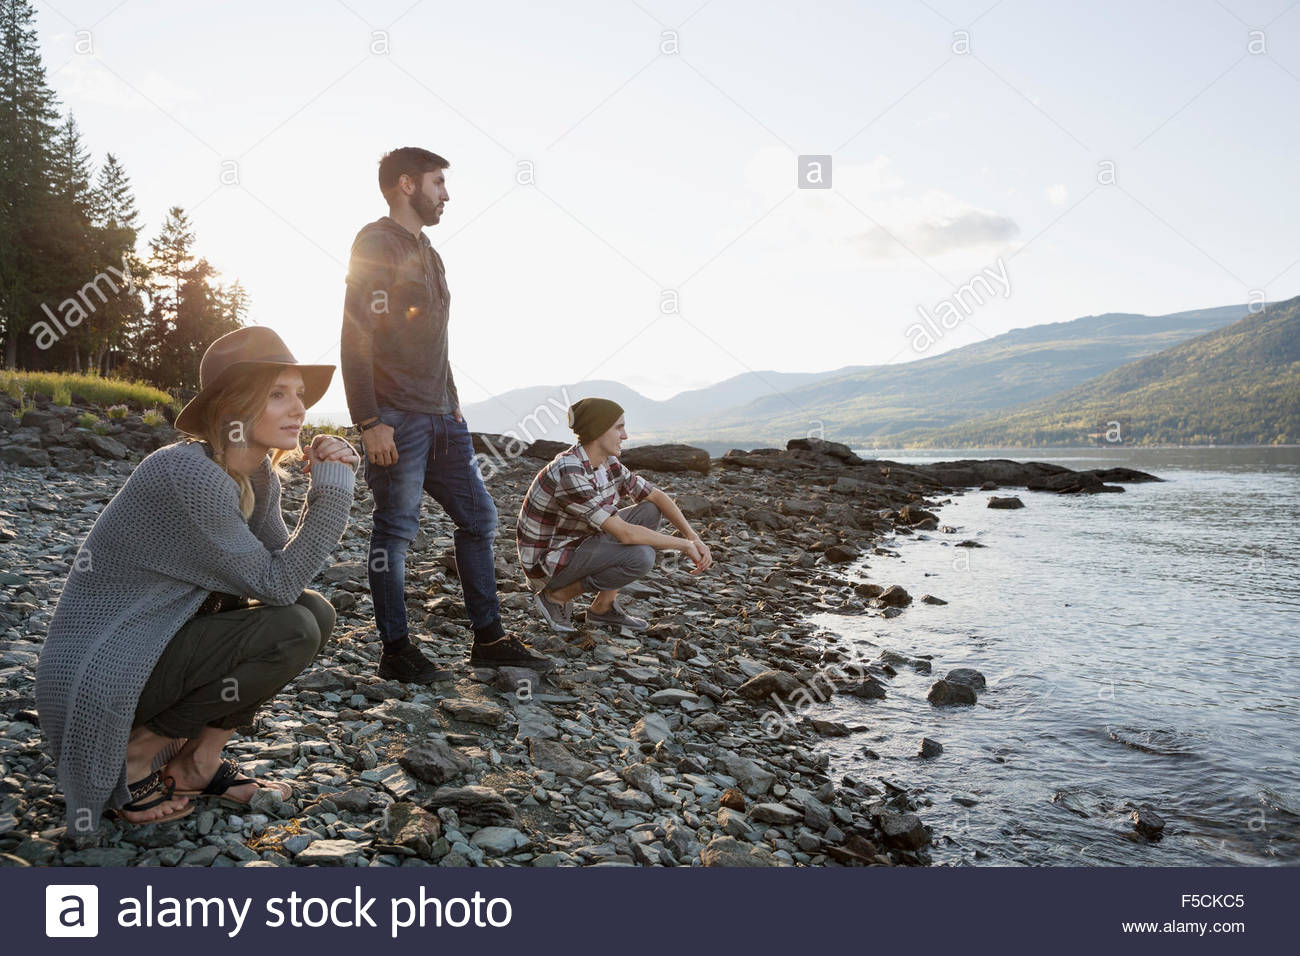 Pensive young friends at craggy lakeside - Stock Image